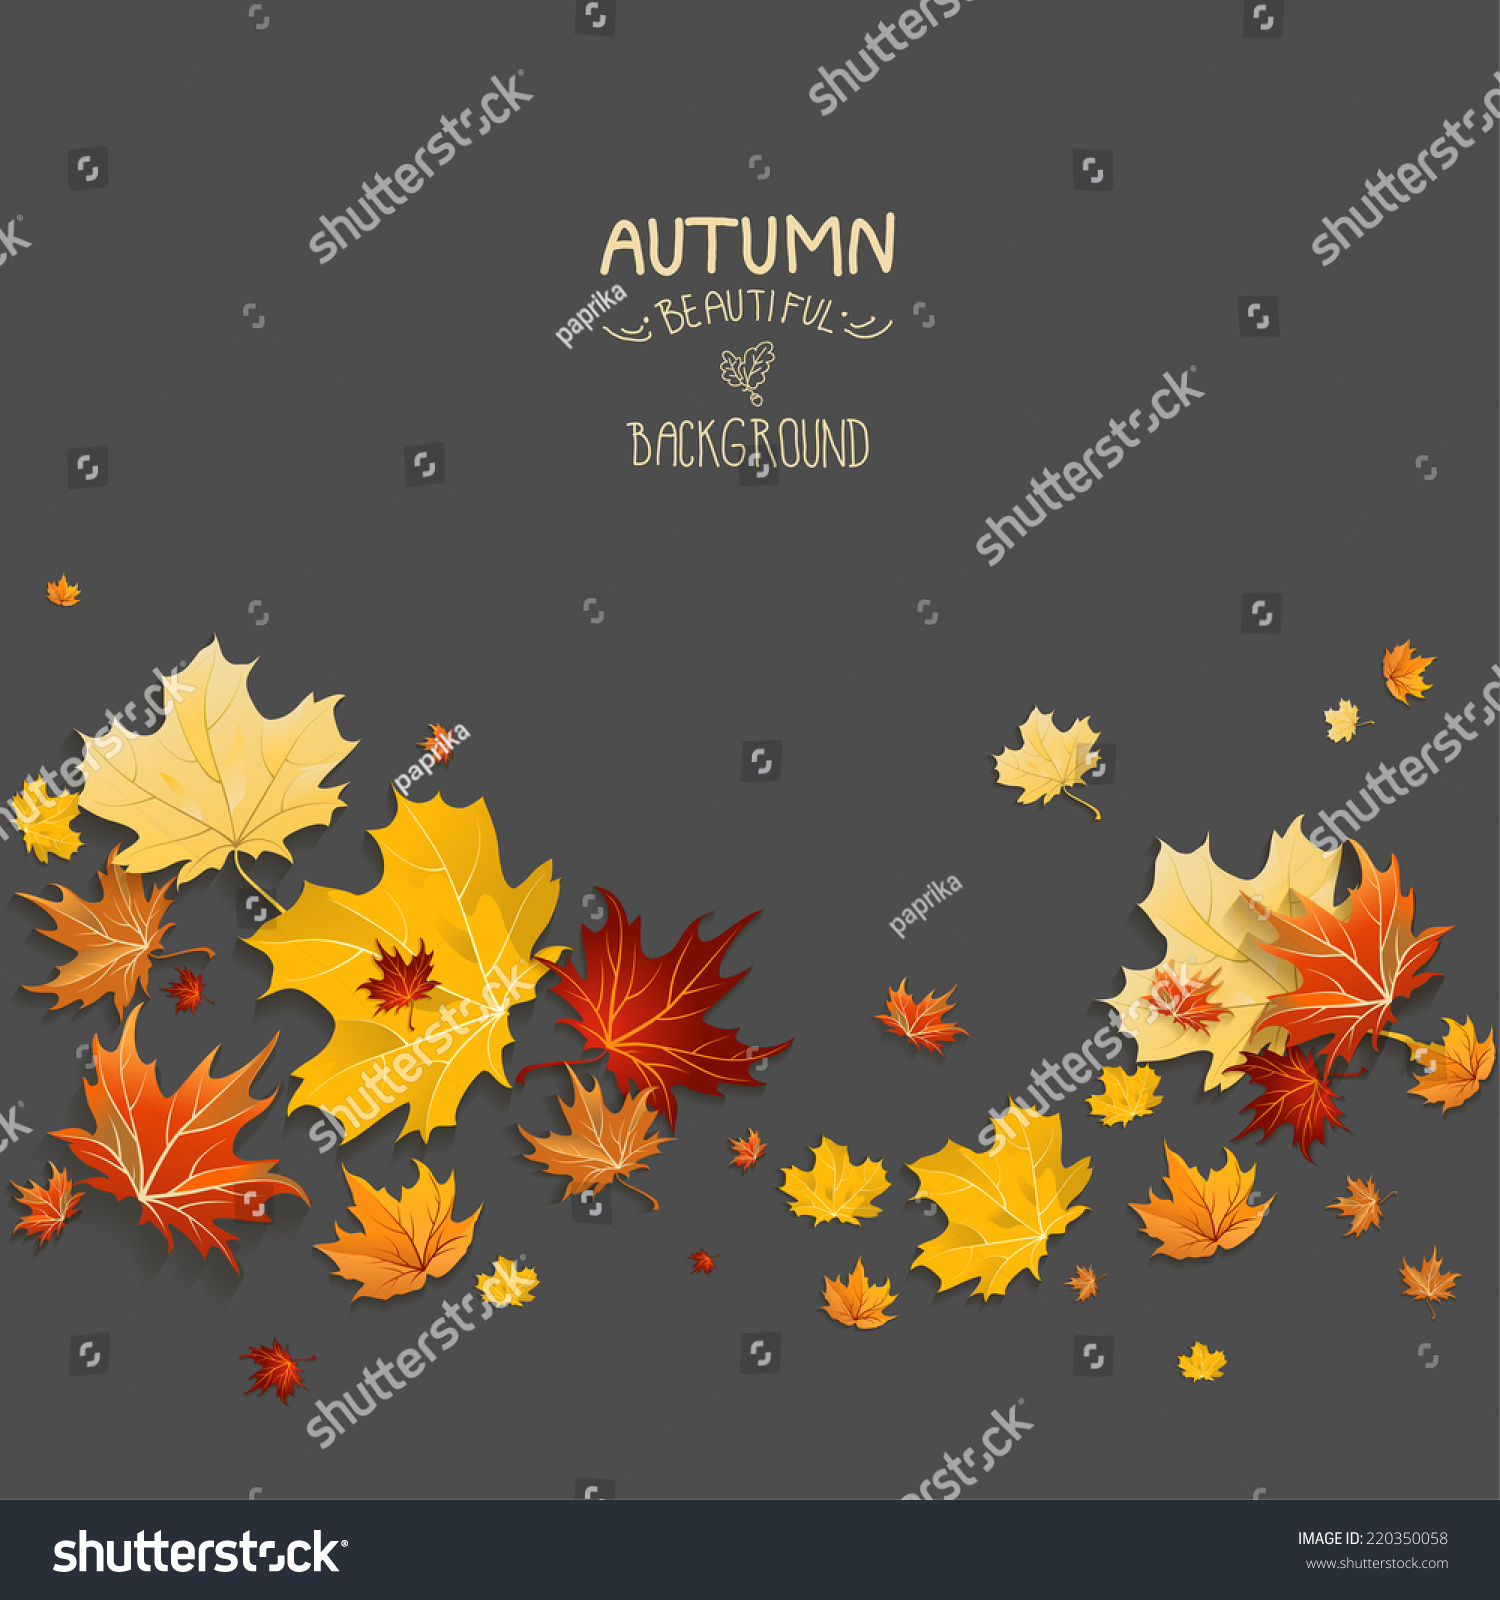 Autumn design on dark background Place for text